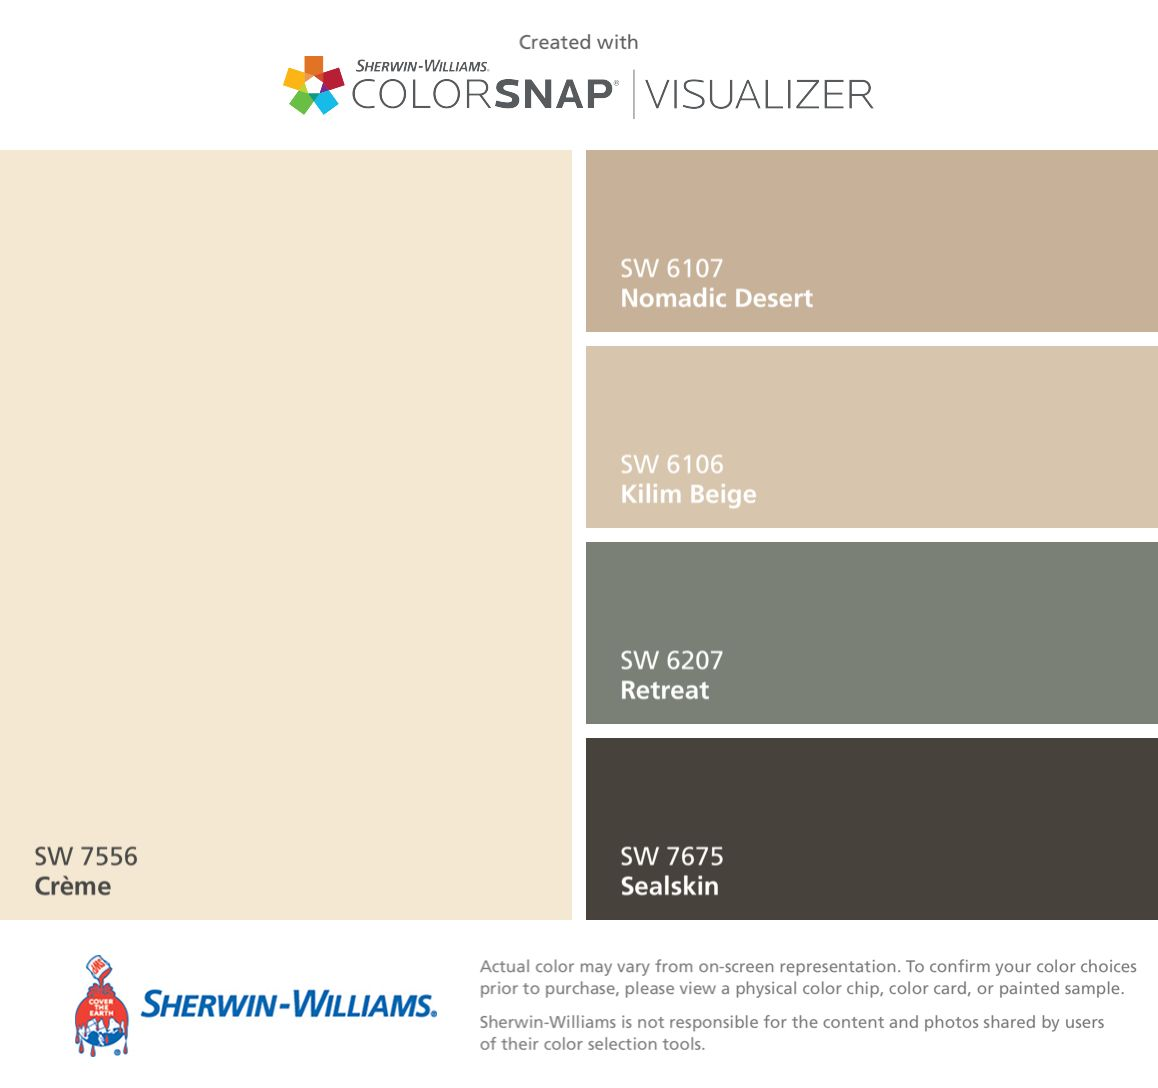 Design Your Home Online With Room Visualizer Sherwin Williams Kilim Beige With Sherwin Williams Kilim